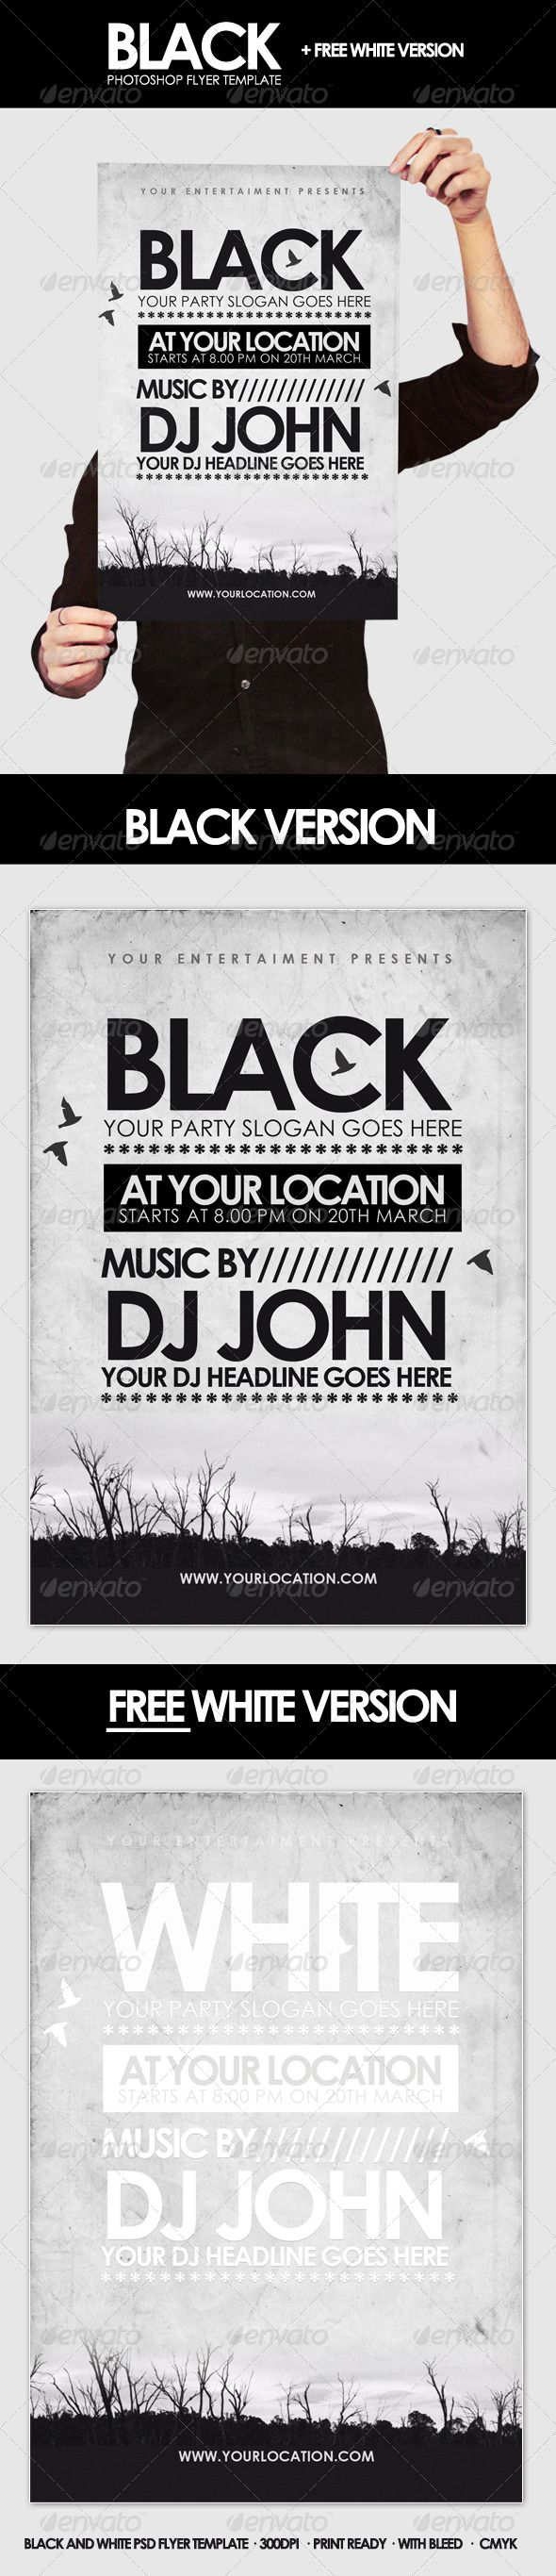 Print Templates - Black - Flyer Template | GraphicRiver | Wildly ...